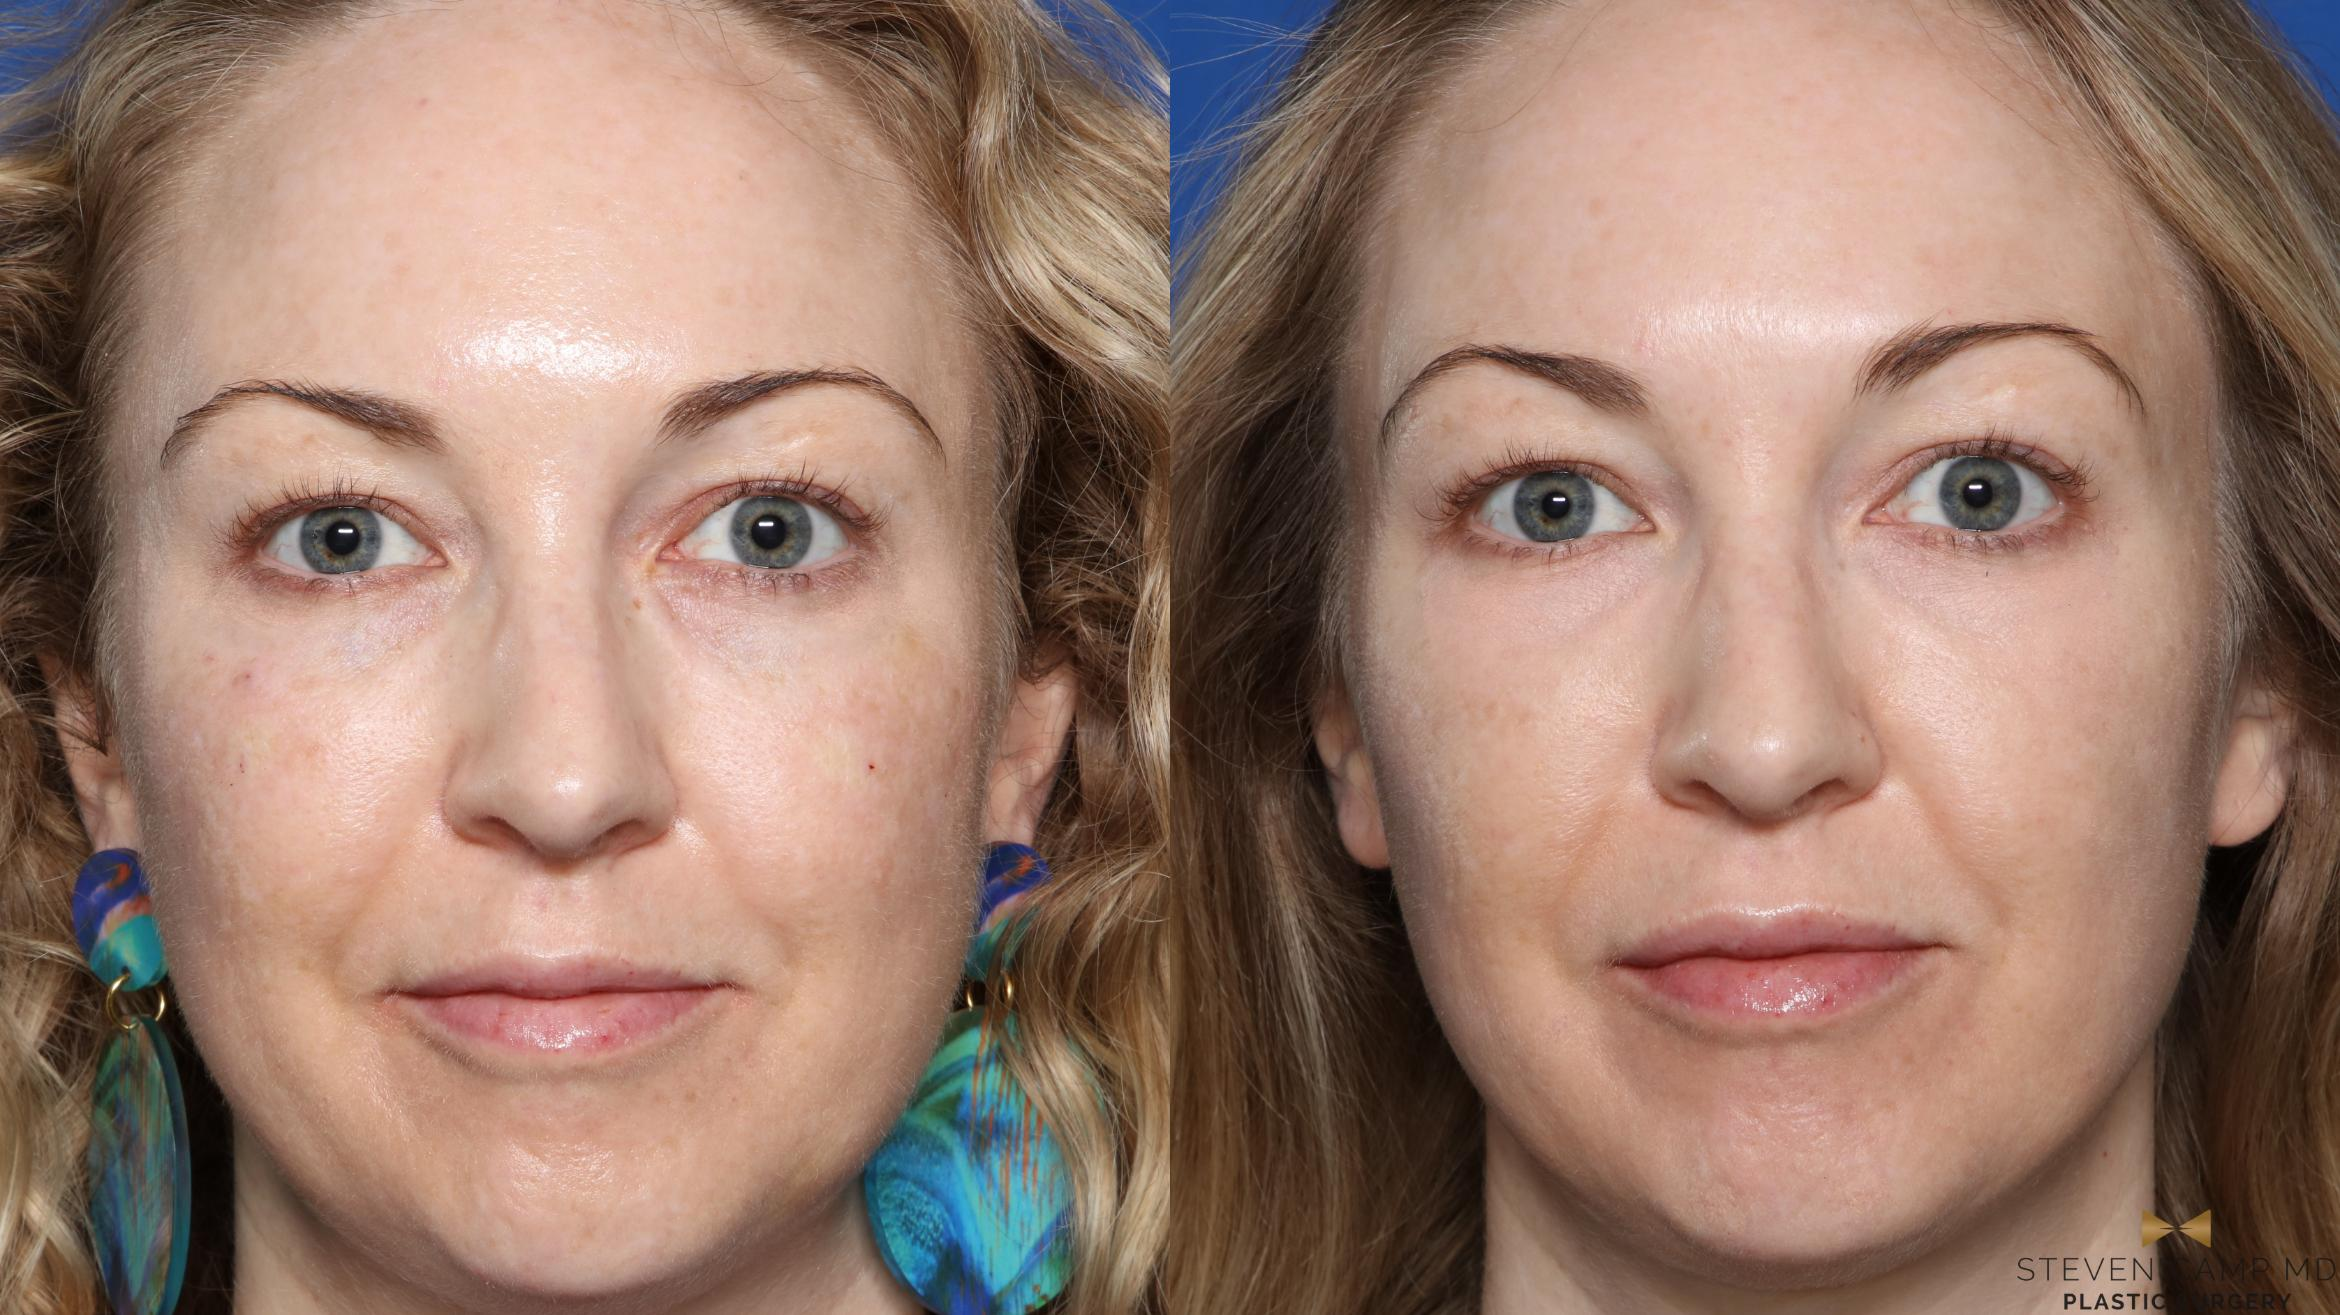 Sciton Laser Before & After Photo | Fort Worth, Texas | Steven Camp MD Plastic Surgery